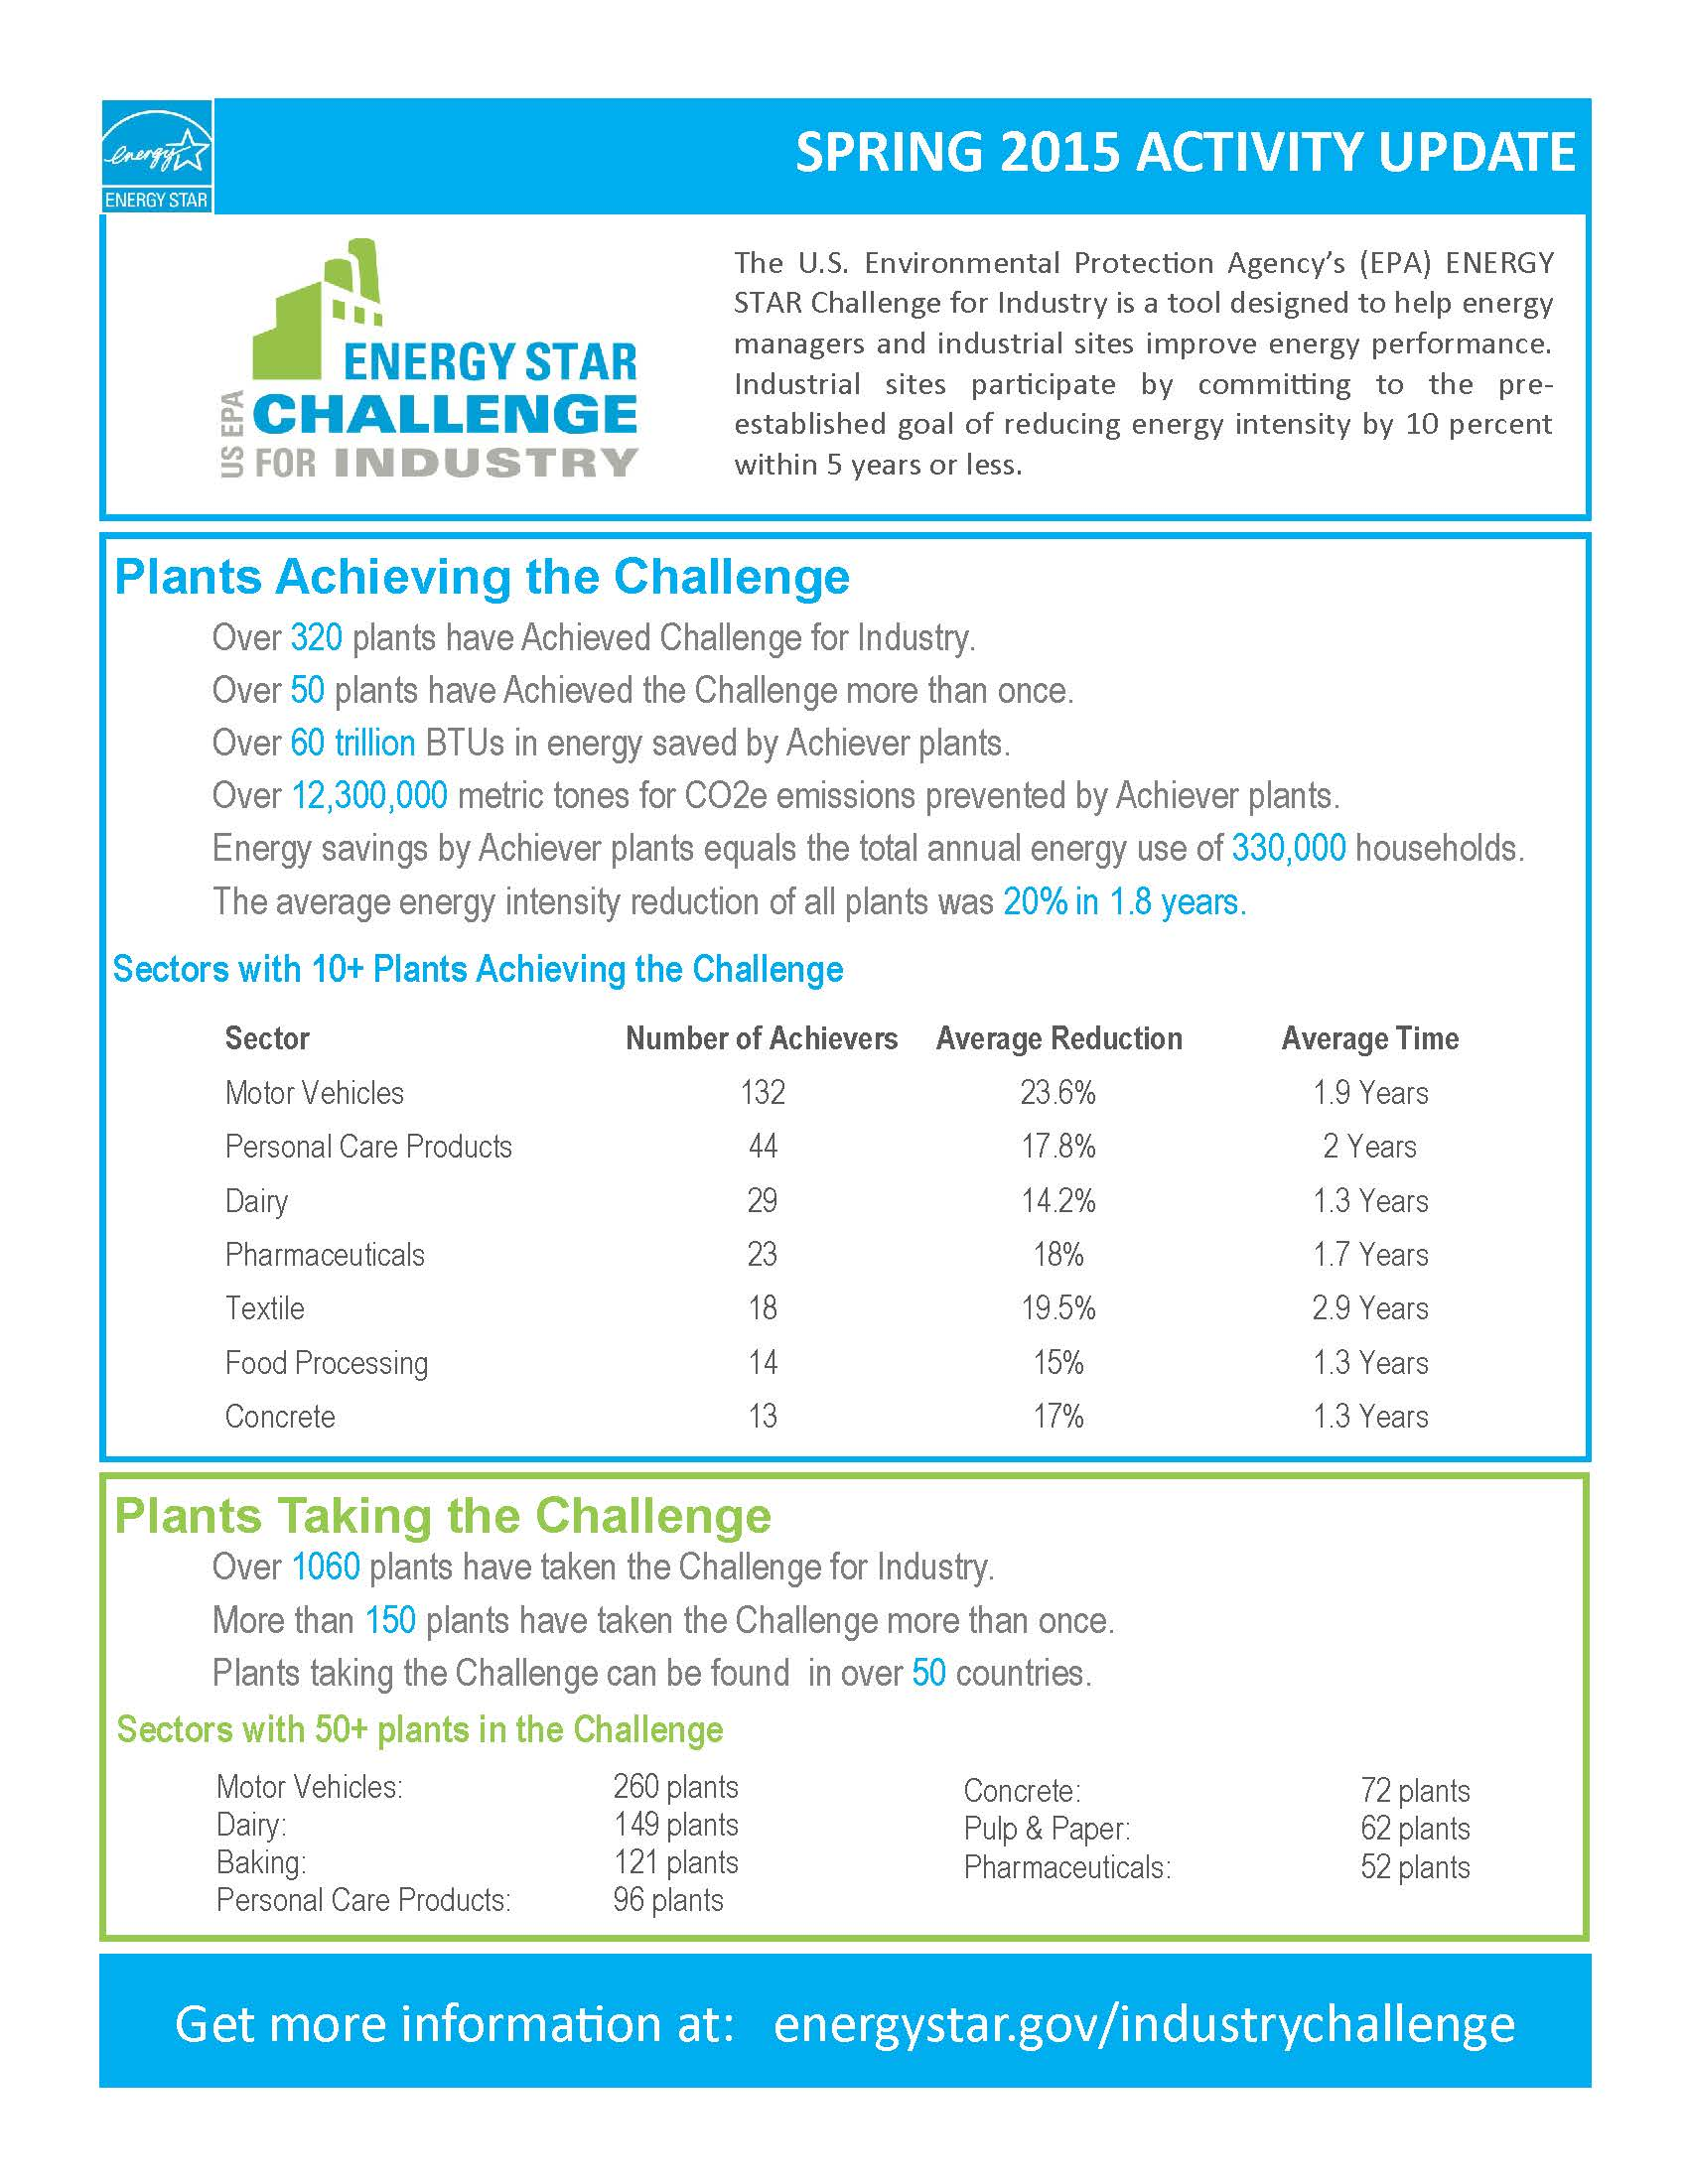 ENERGY STAR Challenge for Industry Update thumbnail image